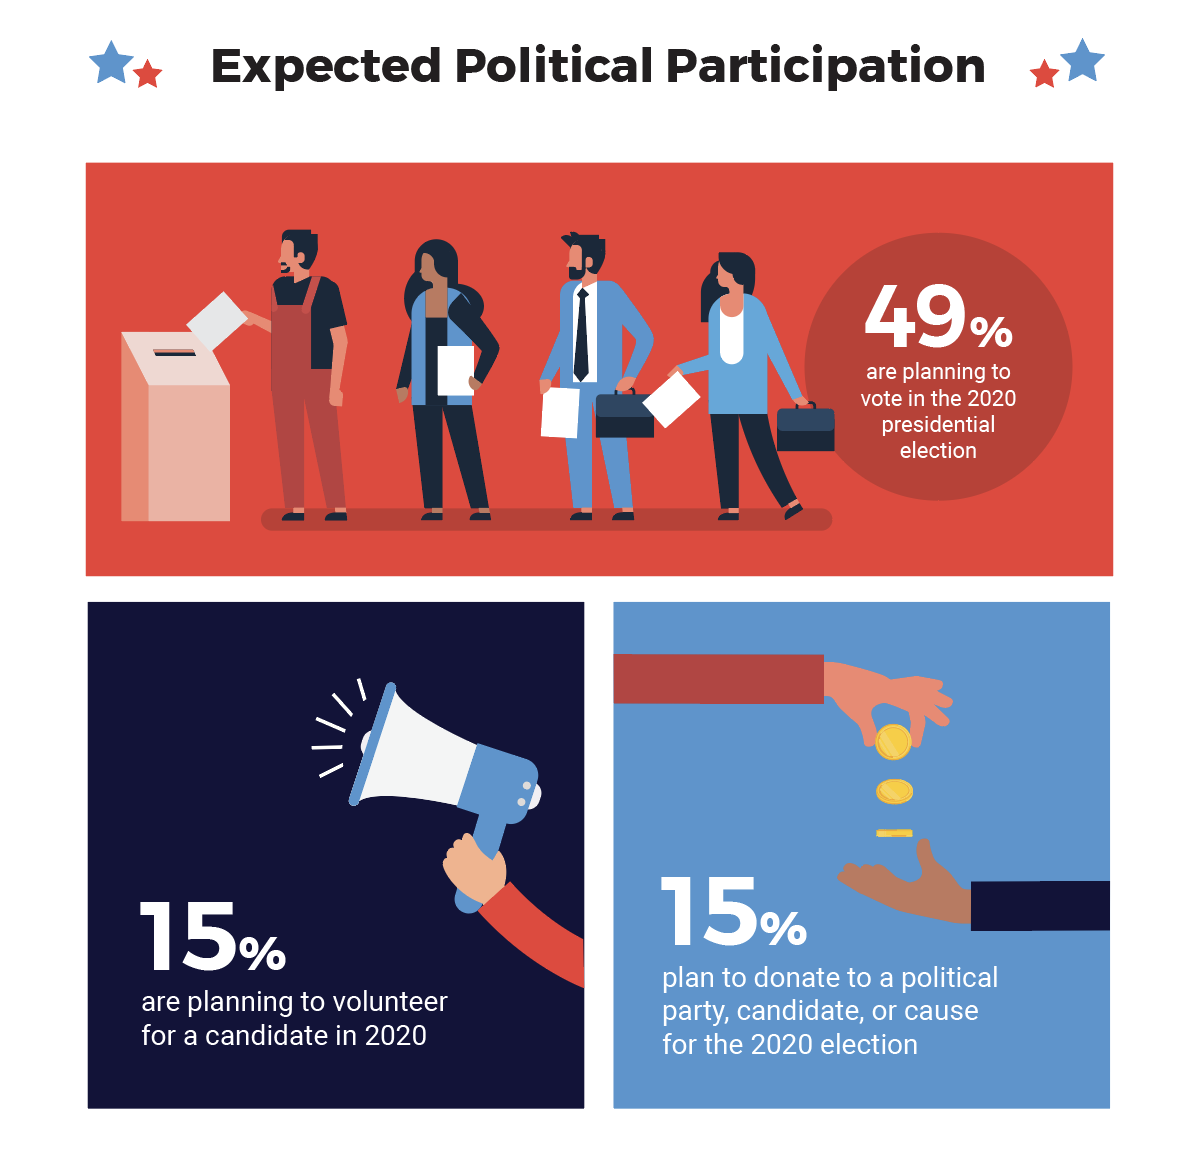 Expected Political Participation